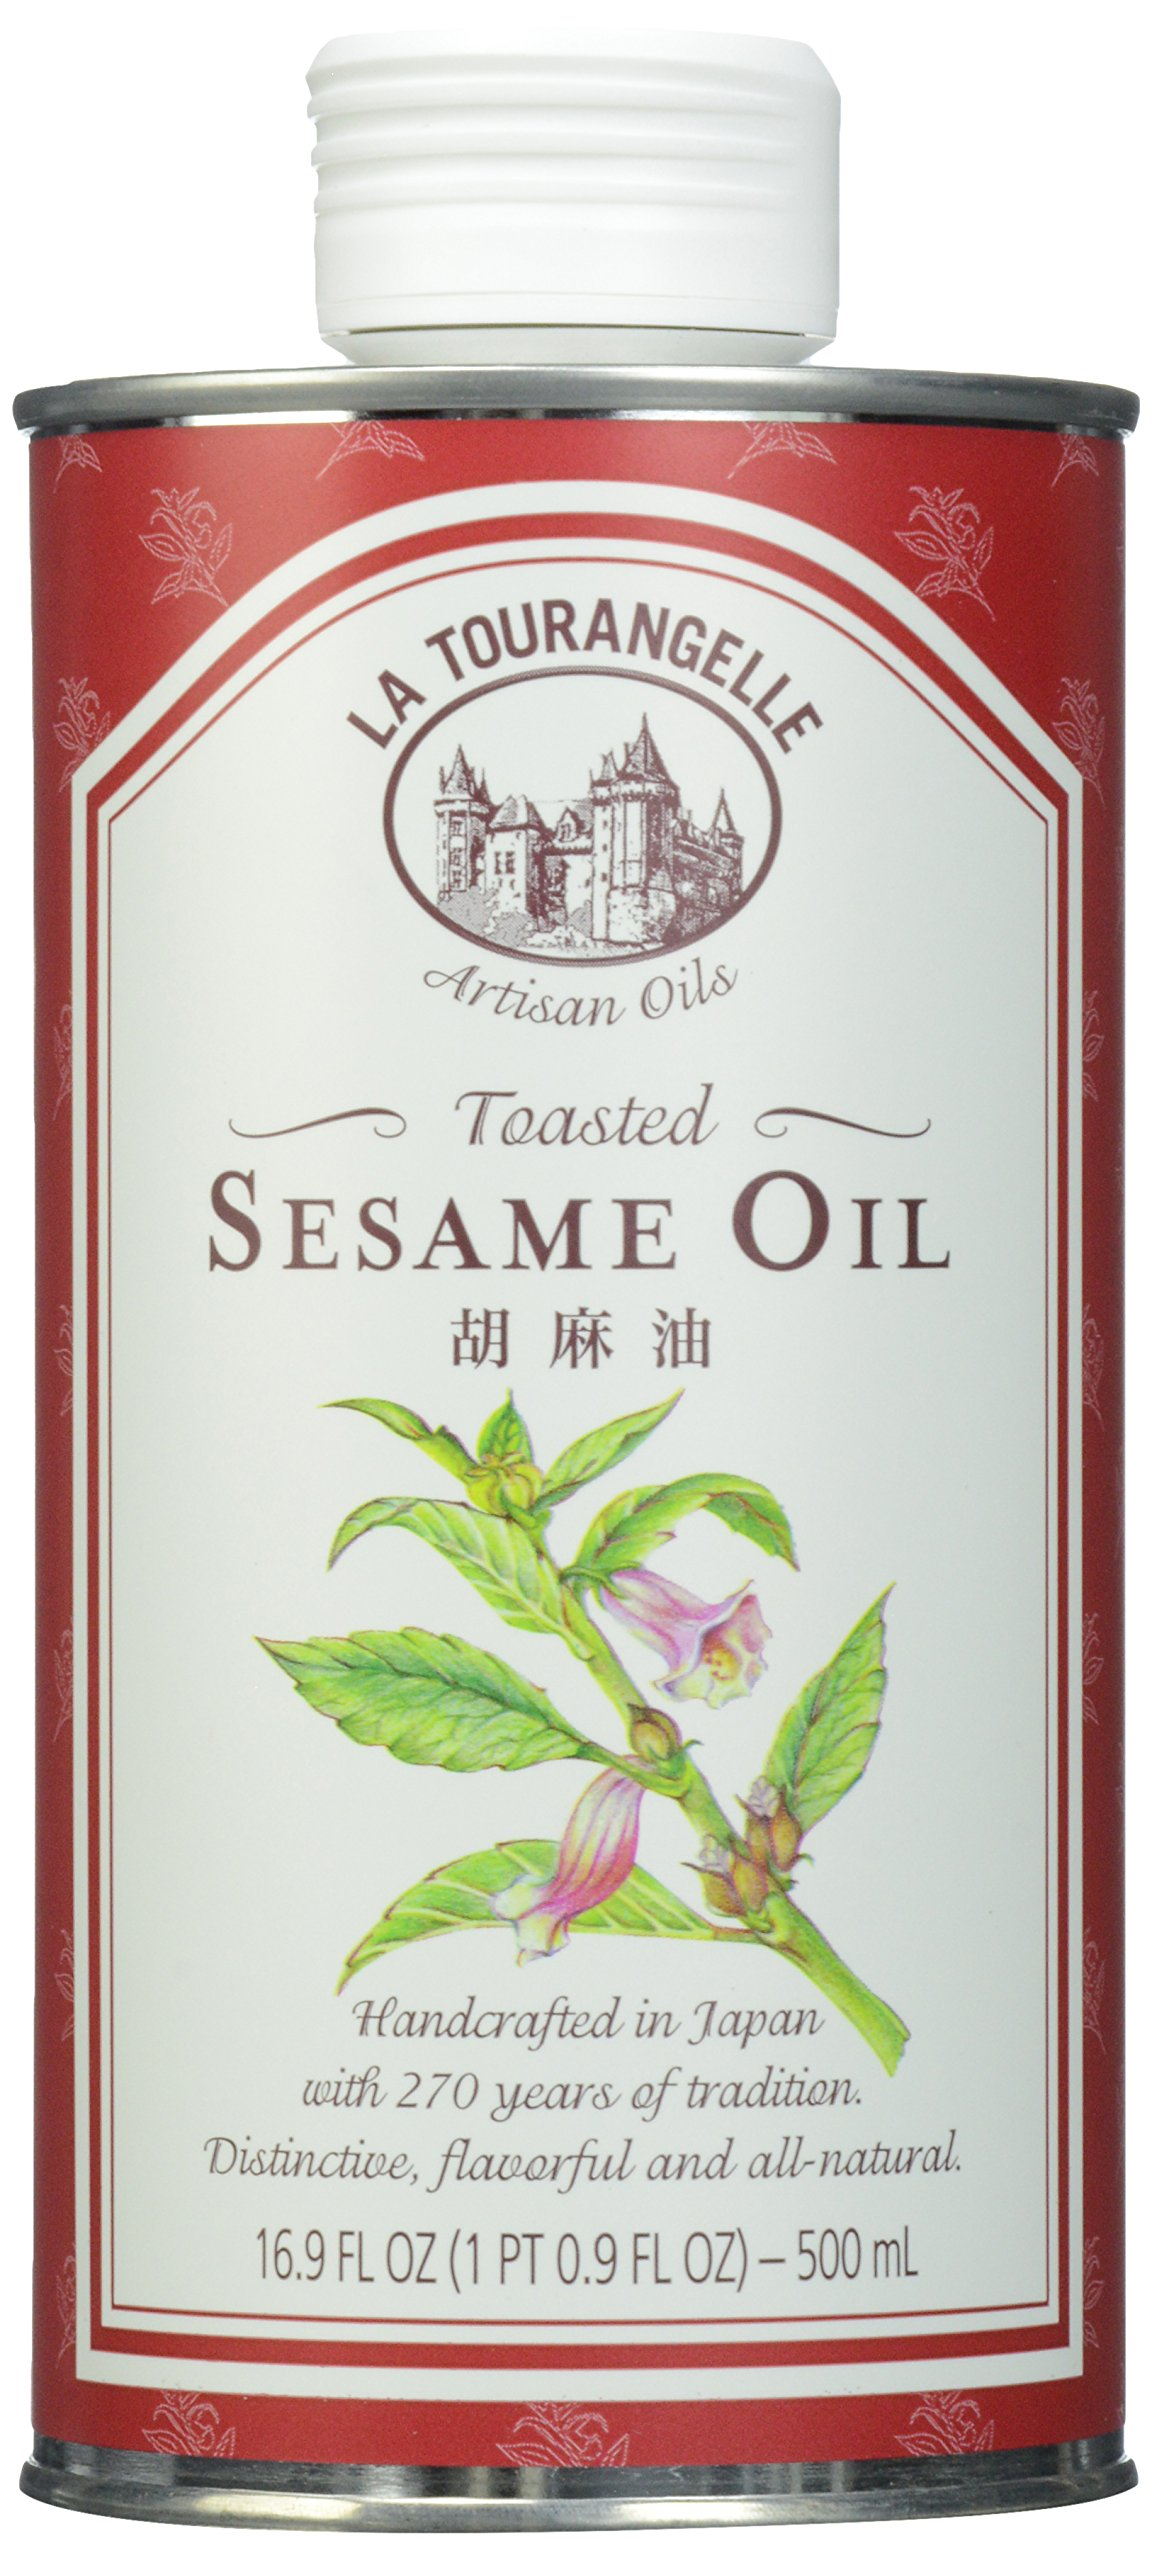 La Tourangelle Toasted Sesame Oil 16.9 Fl. Oz, All-Natural, Artisanal, Great for Stir Fry, Noodles, or as a Marinade